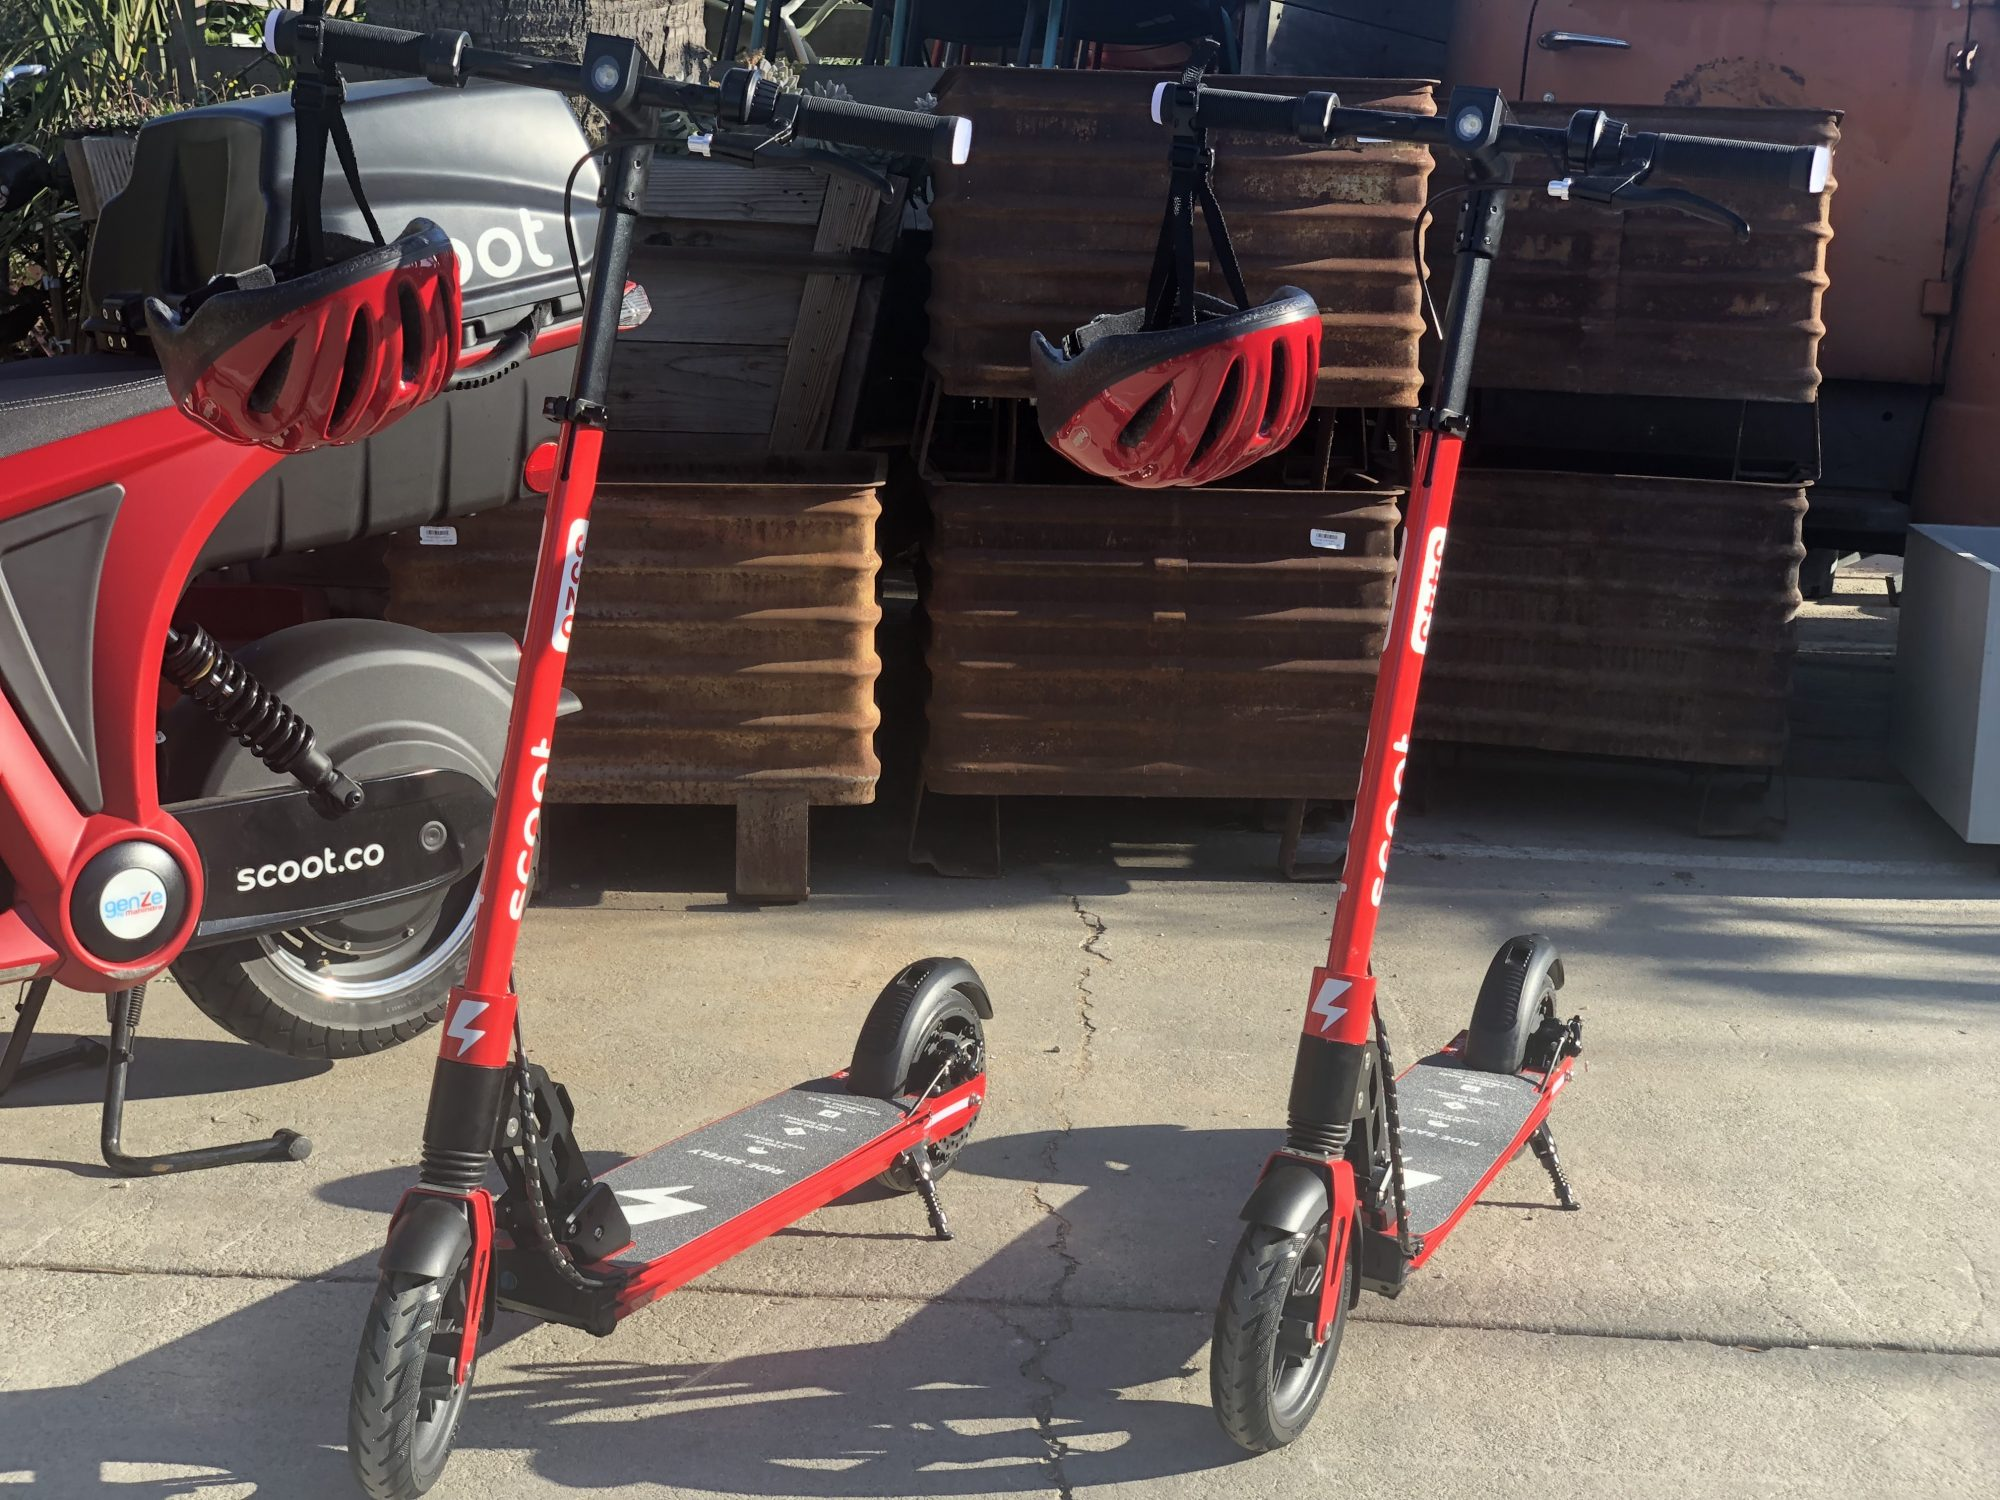 Communication on this topic: Electric scooters return to San Francisco after , electric-scooters-return-to-san-francisco-after/